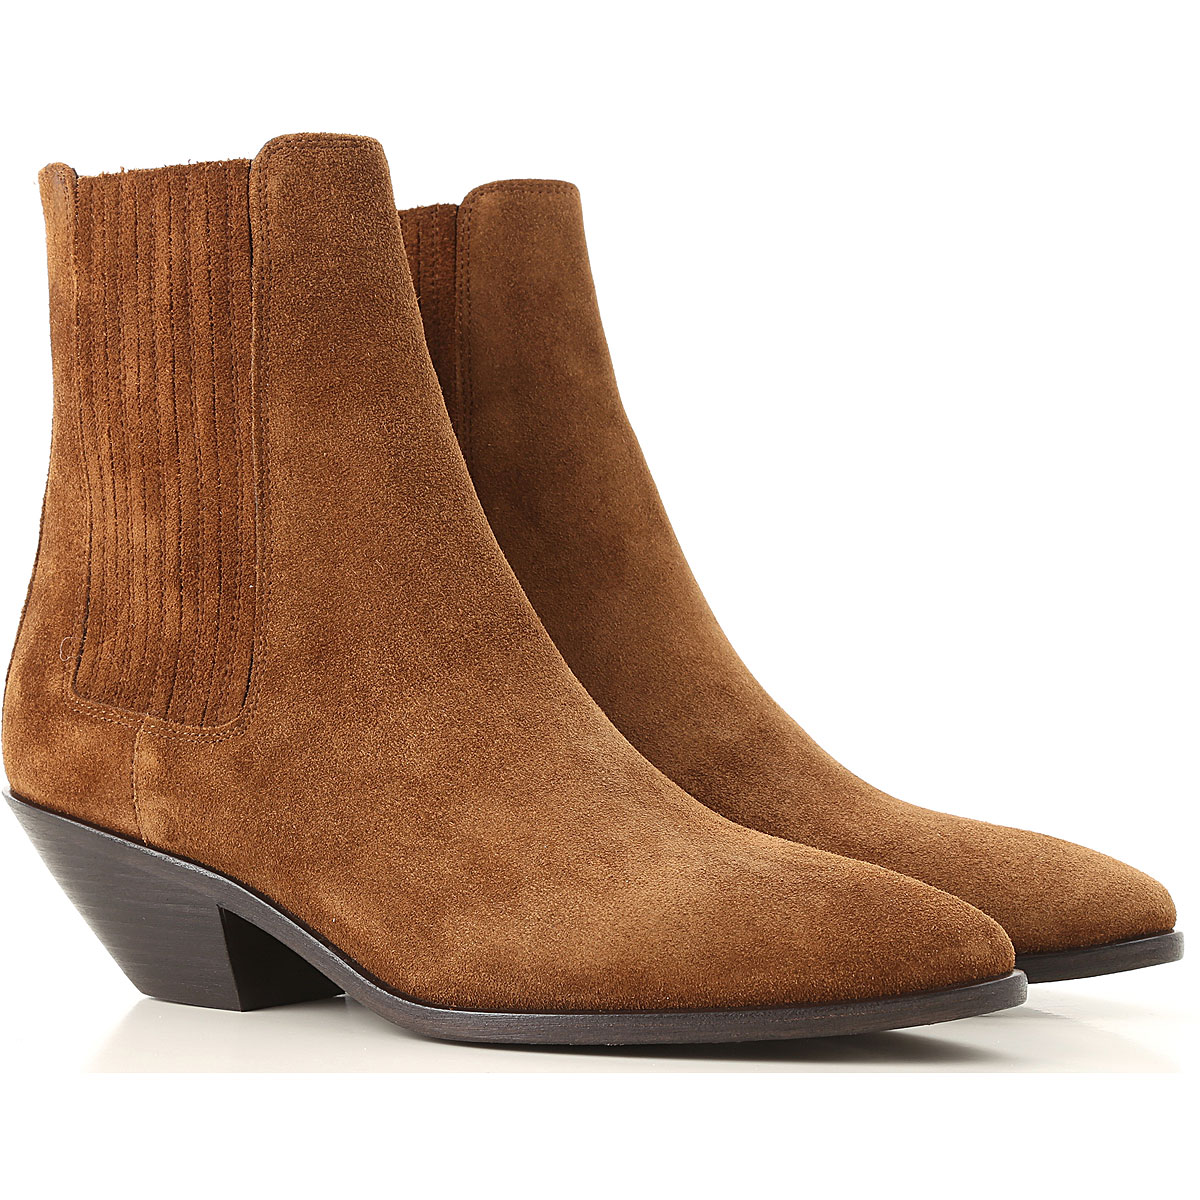 Yves Saint Laurent Chelsea Boots for Women On Sale, Brown, suede, 2019, 10 5.5 6 8 8.5